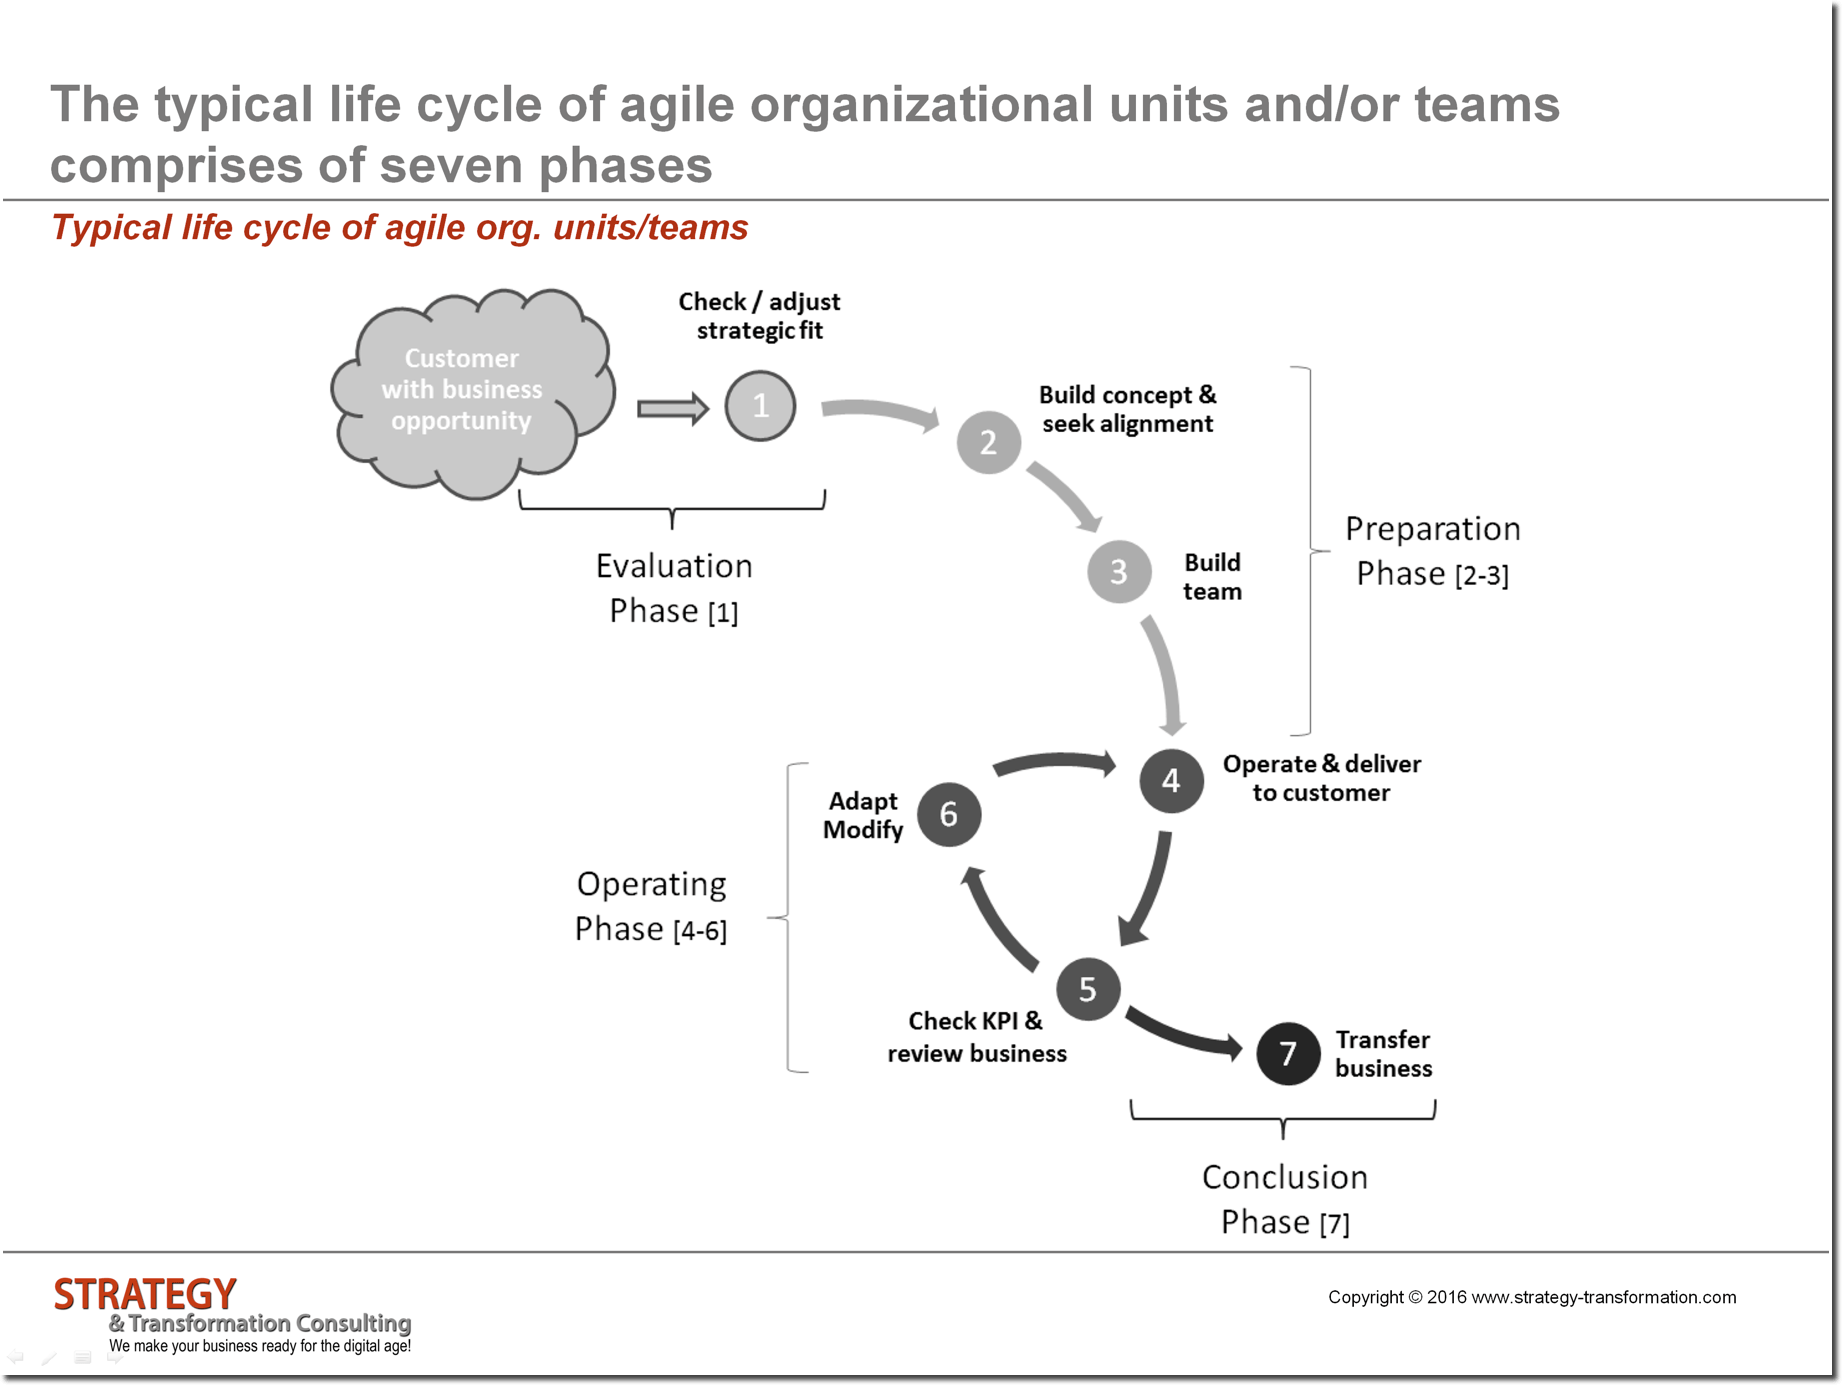 Typical life cycle of agile org units